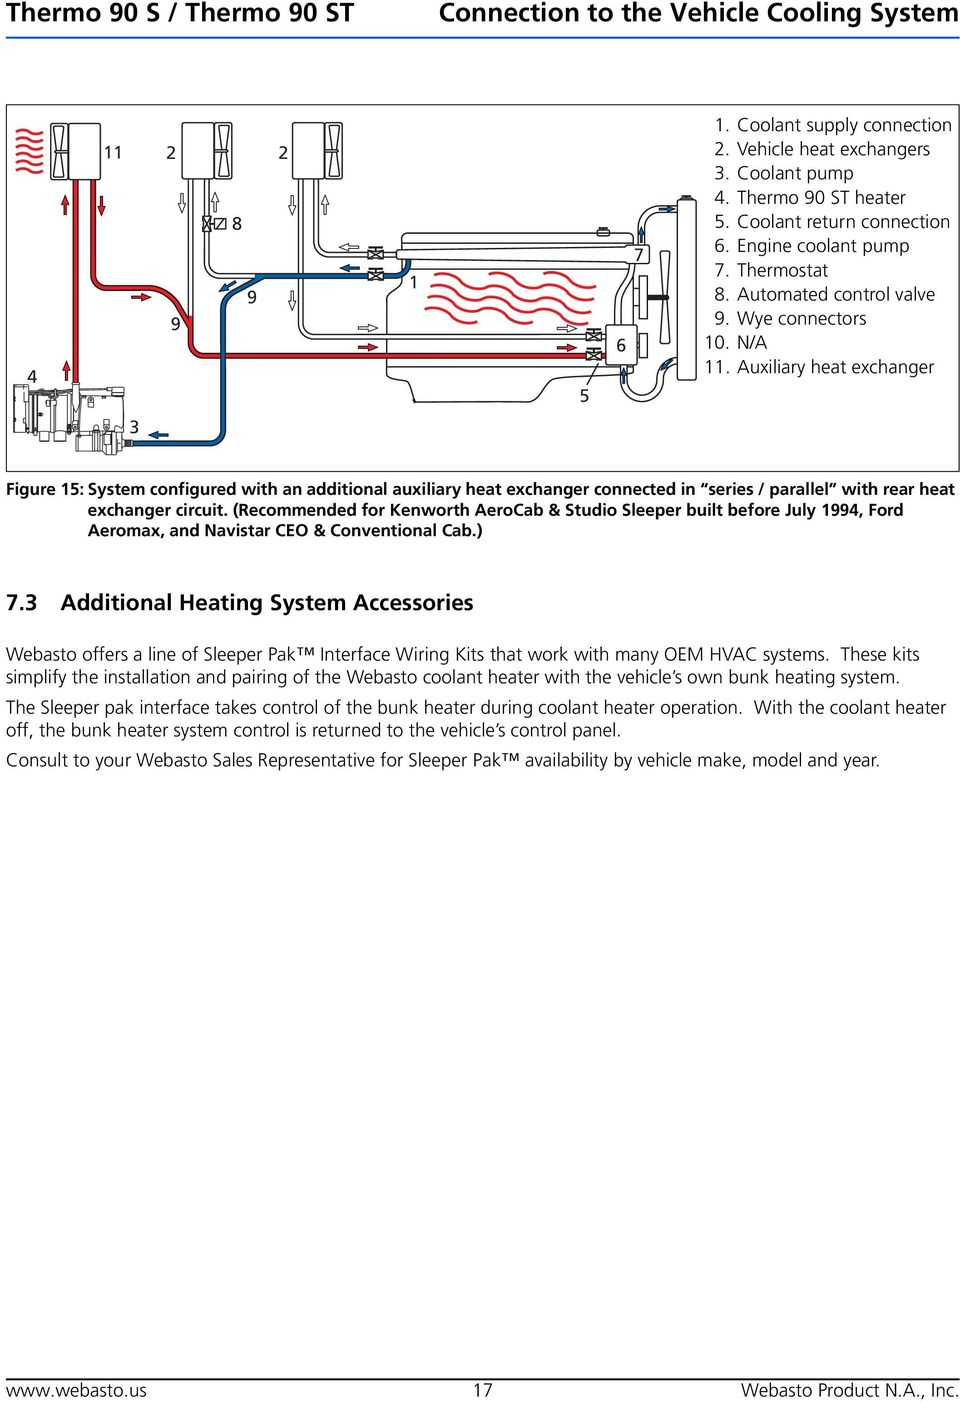 Thermo 90 S B Gasoline D Diesel St Navistar Engine Diagram Auxiliary Heat Exchanger Figure System Configured With An Additional Connected In Series